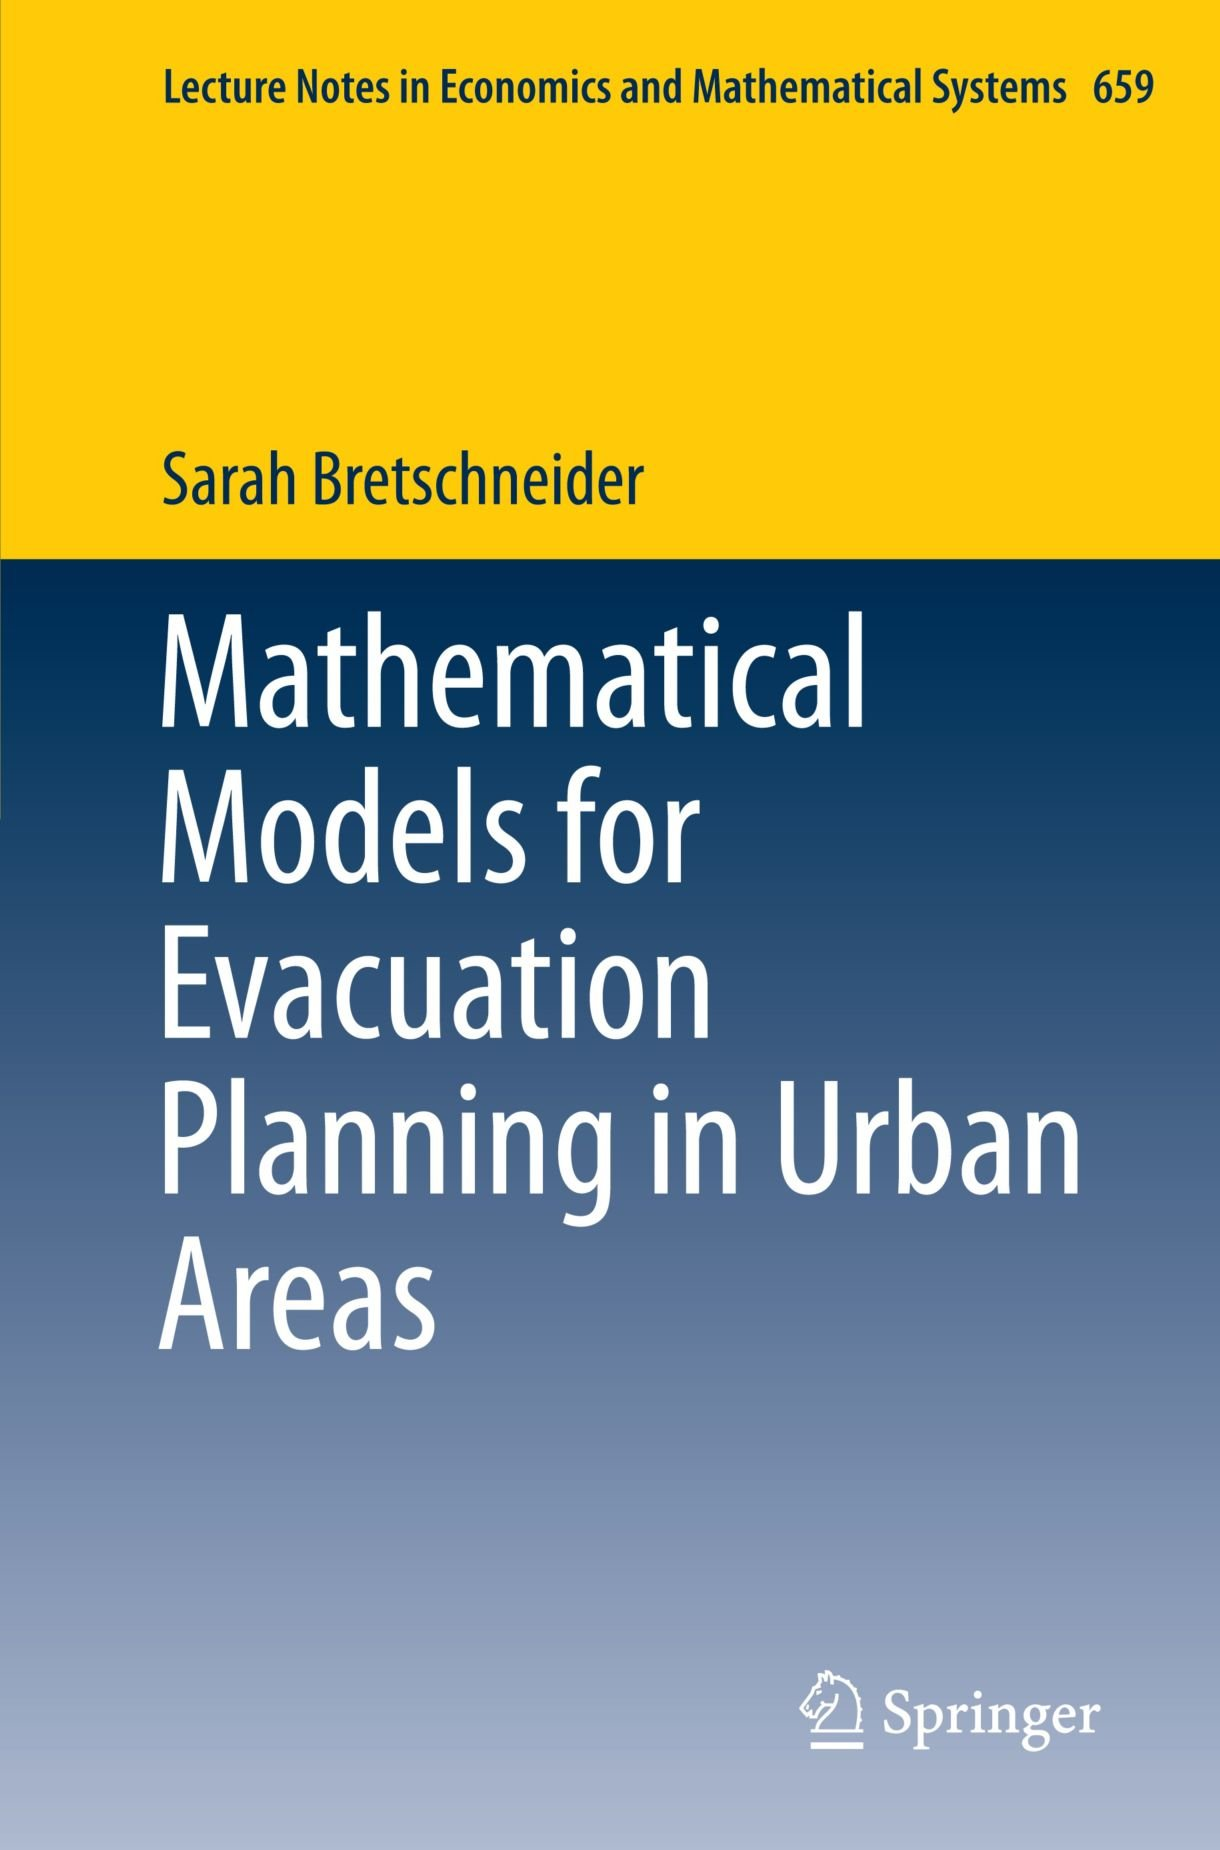 Mathematical Models for Evacuation Planning in Urban Areas (Lecture Notes in Economics and Mathematical Systems) by Brand: Springer